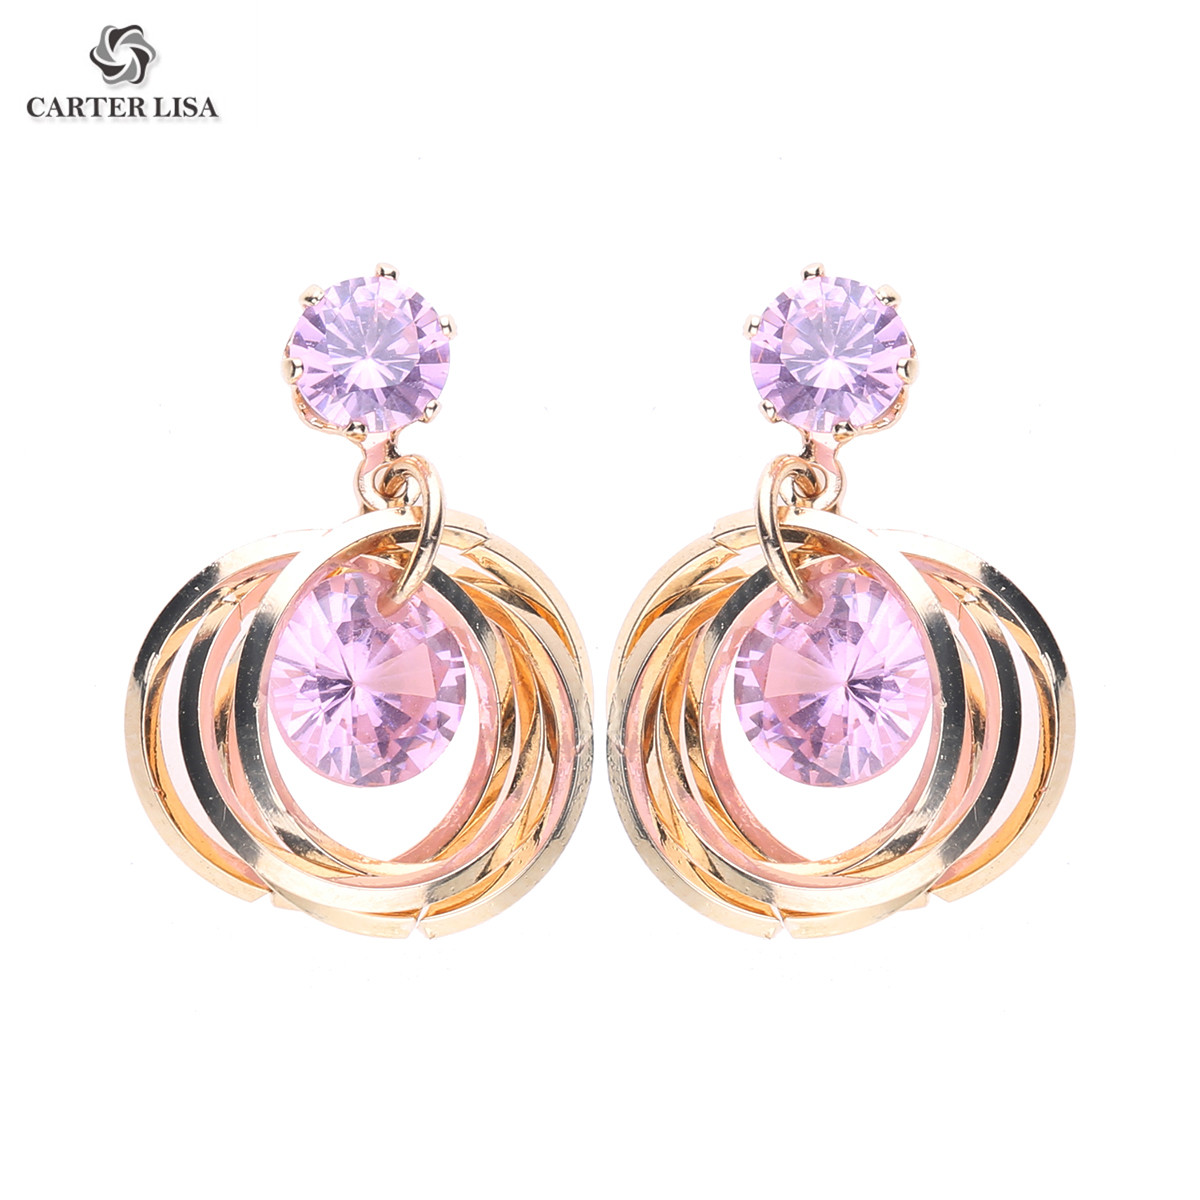 CARTER LISA New Arrival Multilayer Crystal Earrings For Women Girl Drop Crystal Fashion Earring Party Jewelry